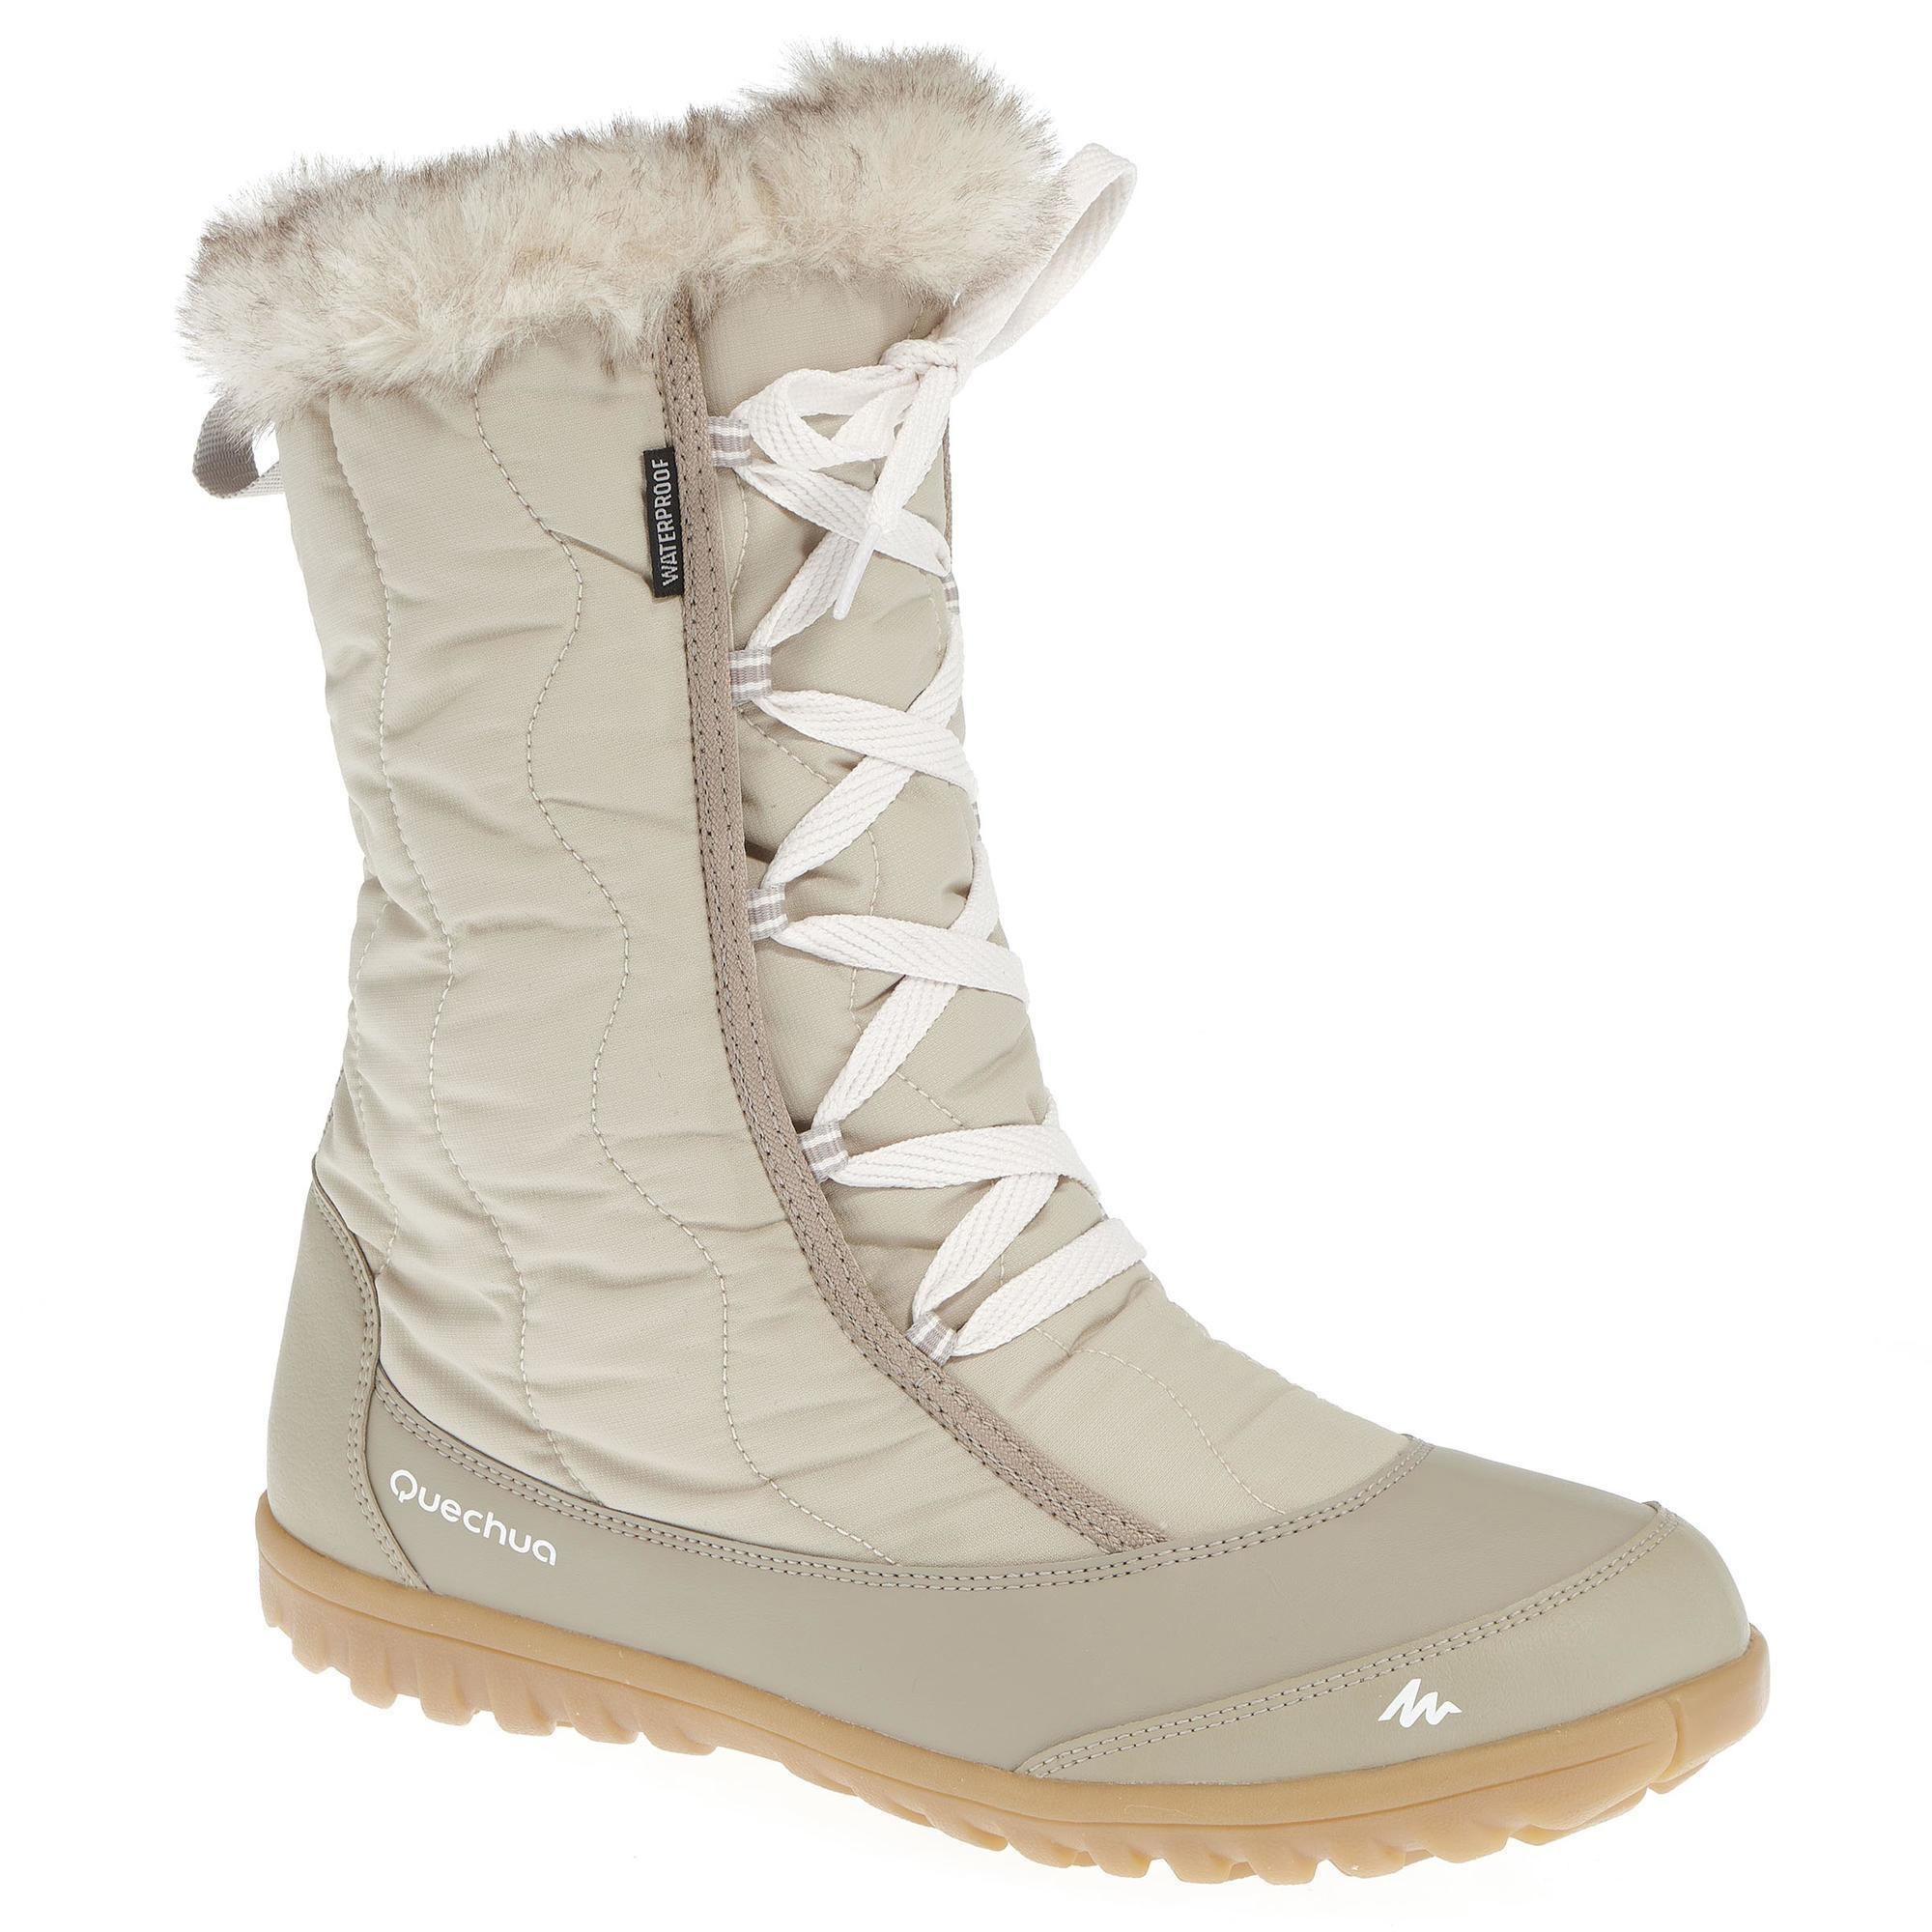 SH900 Women's Warm and Waterproof Snow Hiking Boots ...